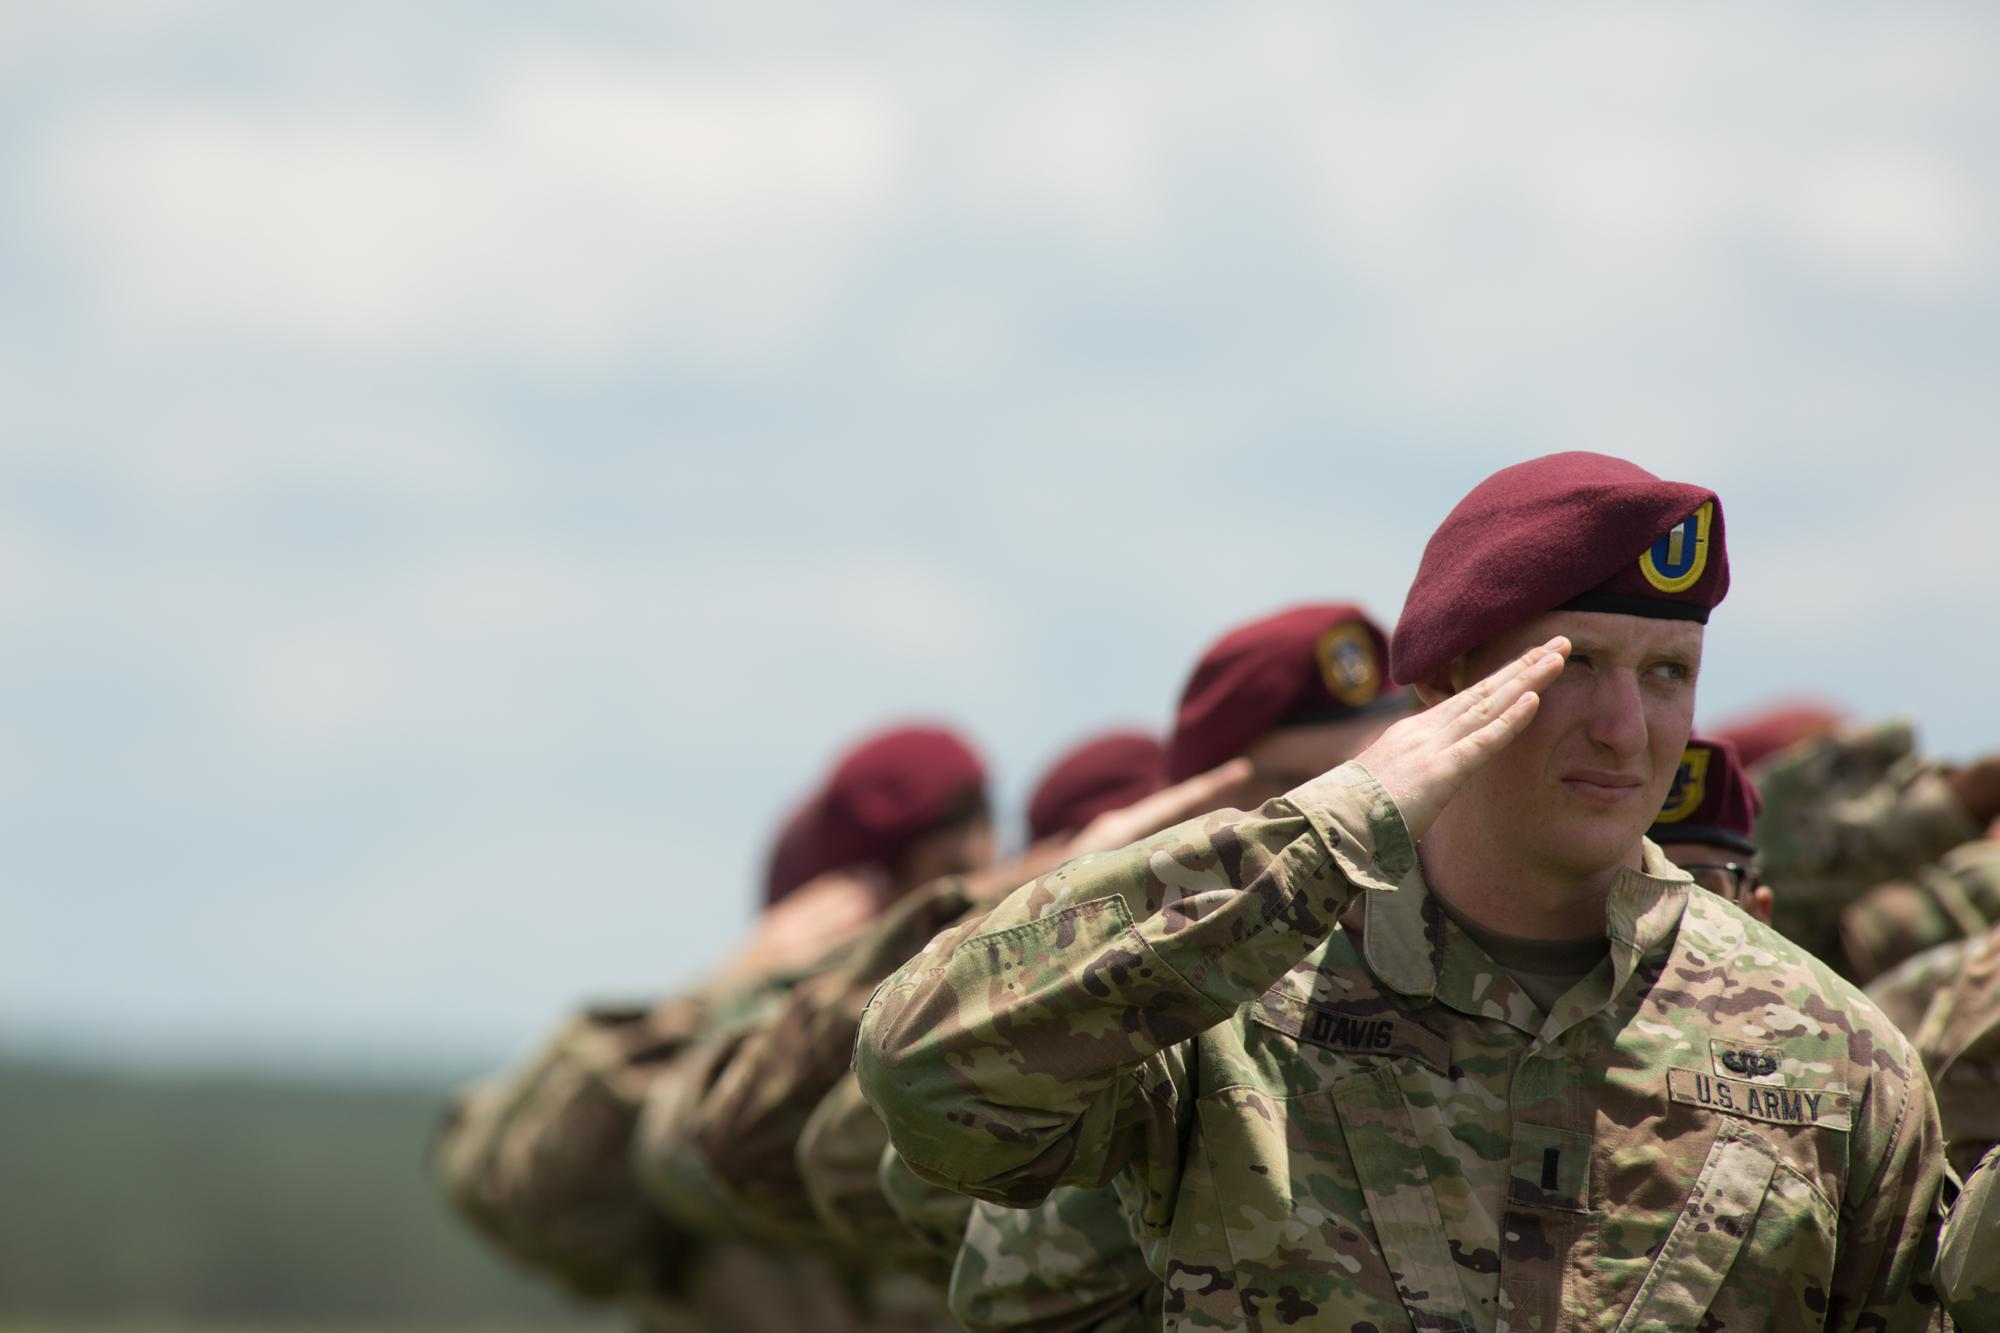 photos the 82nd airborne division turns 100 american homefront